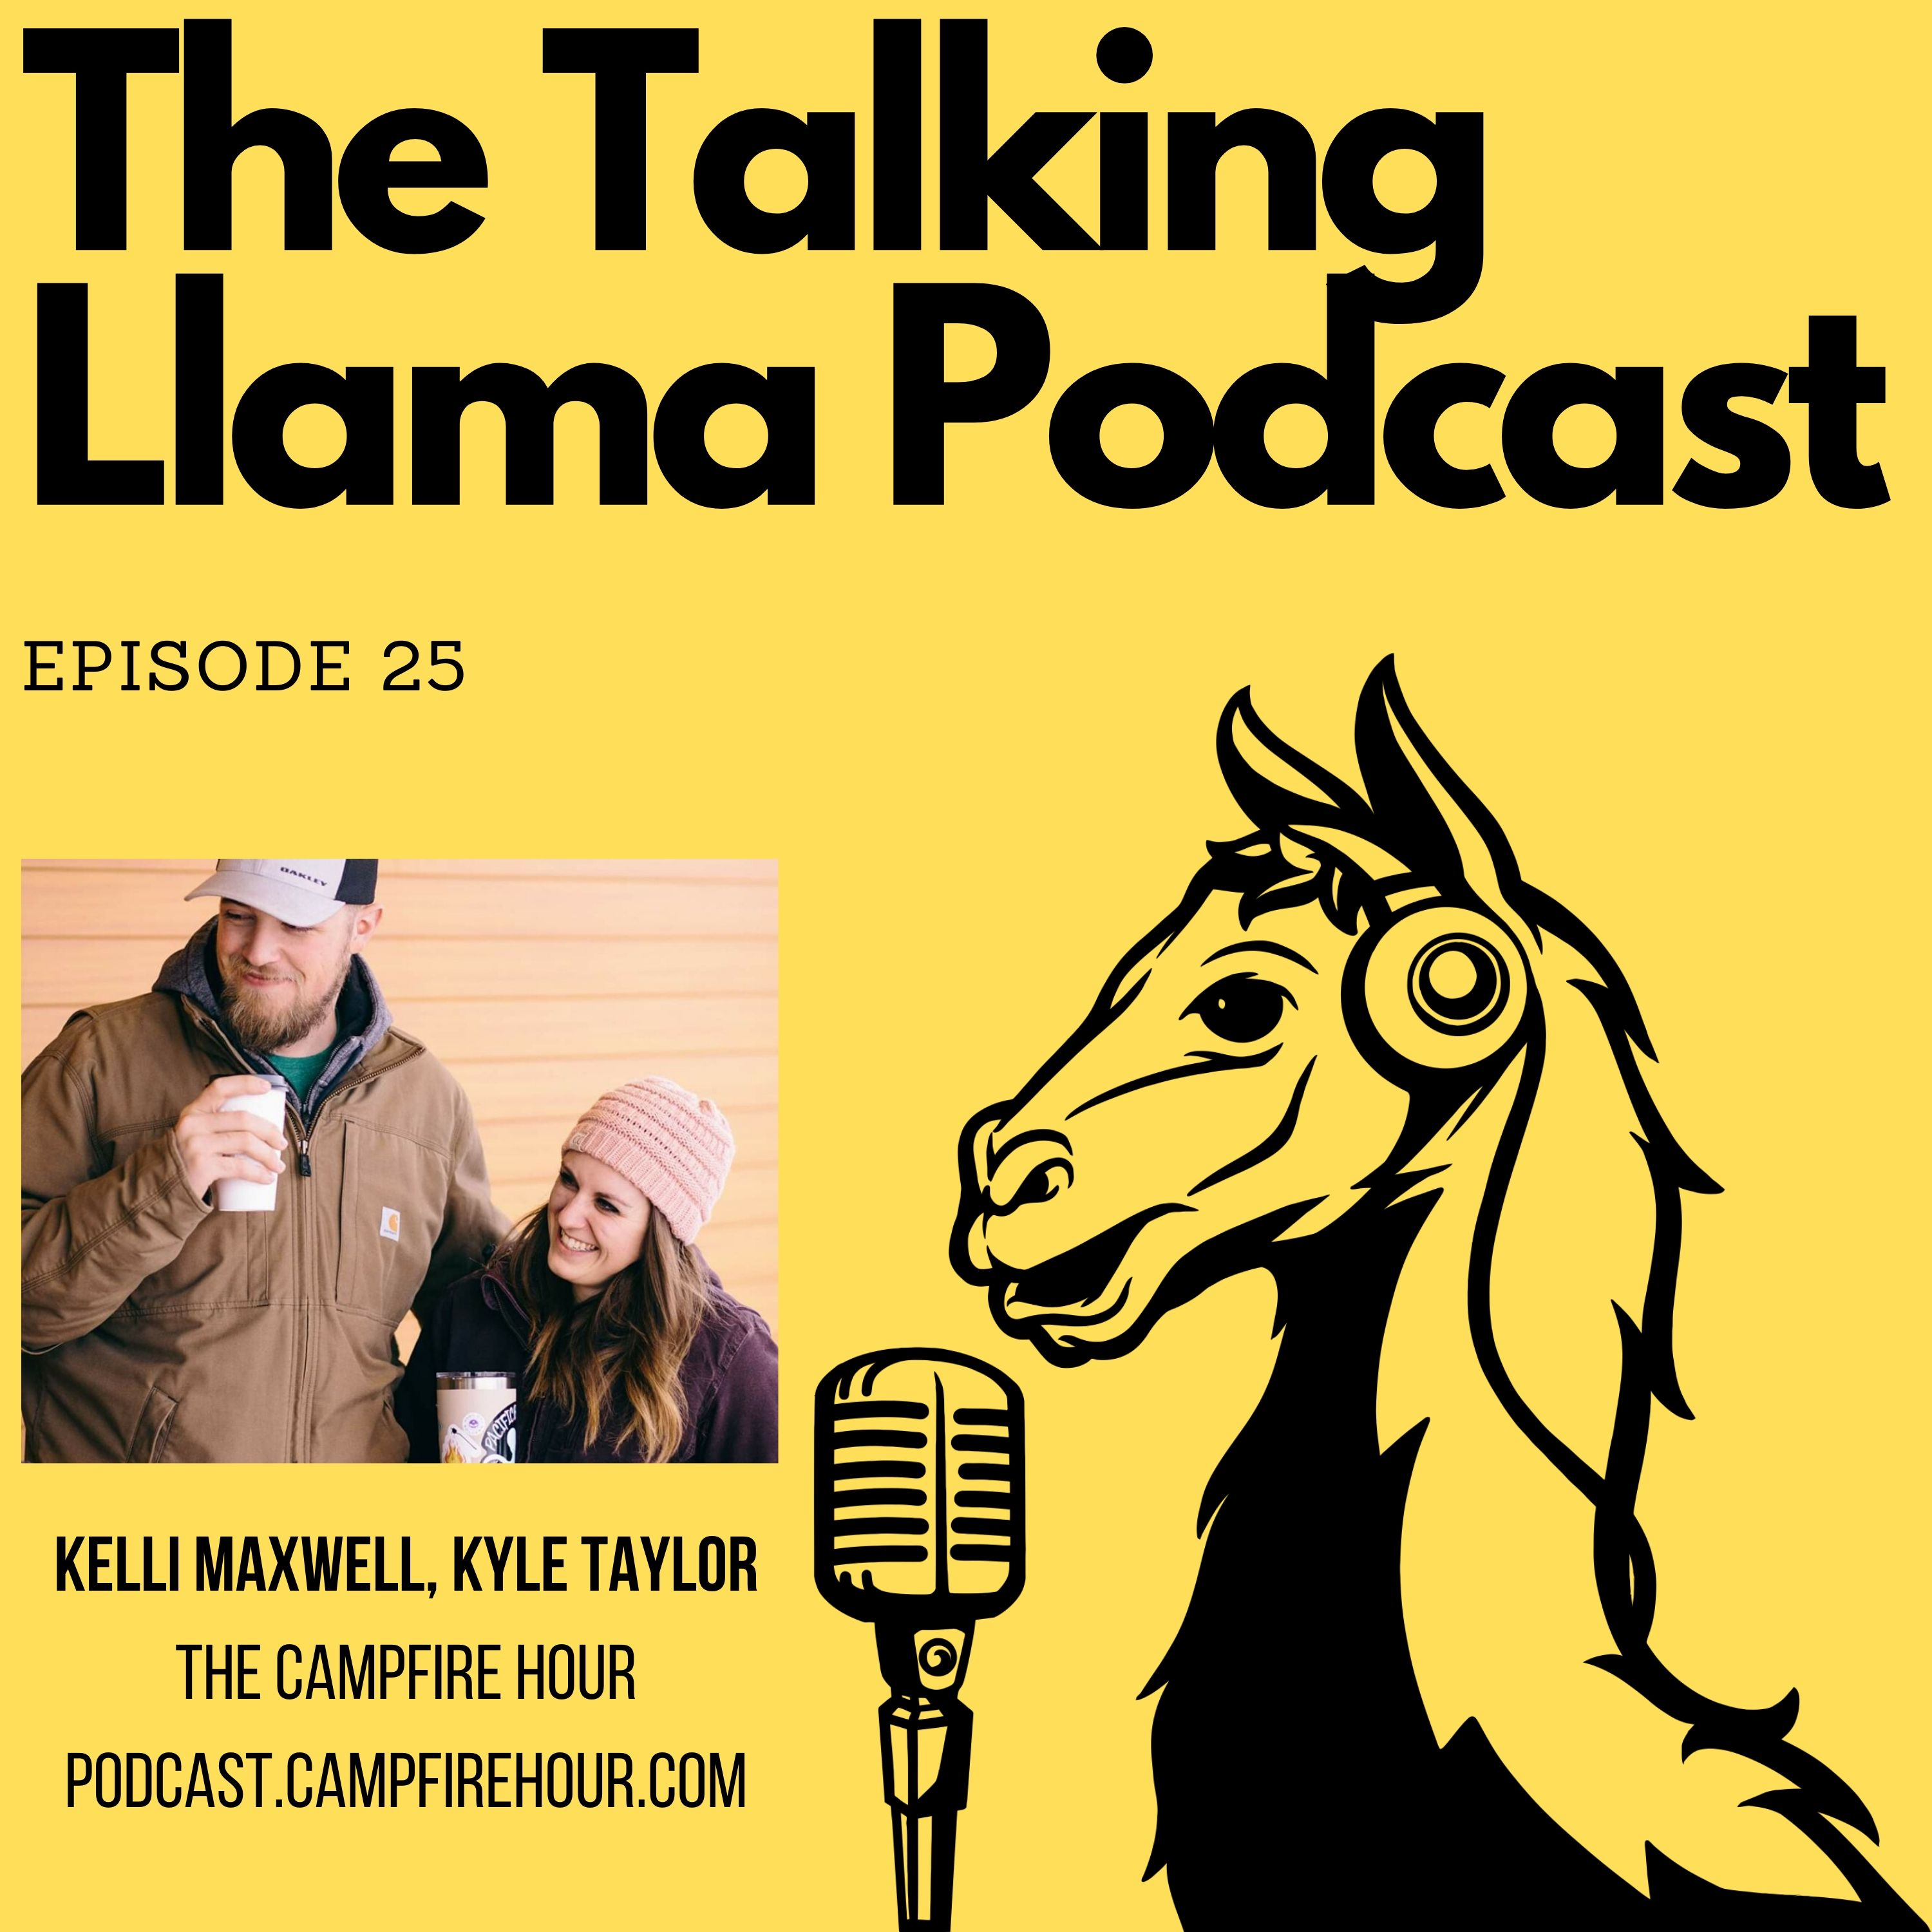 Artwork for podcast The Talking Llama Podcast